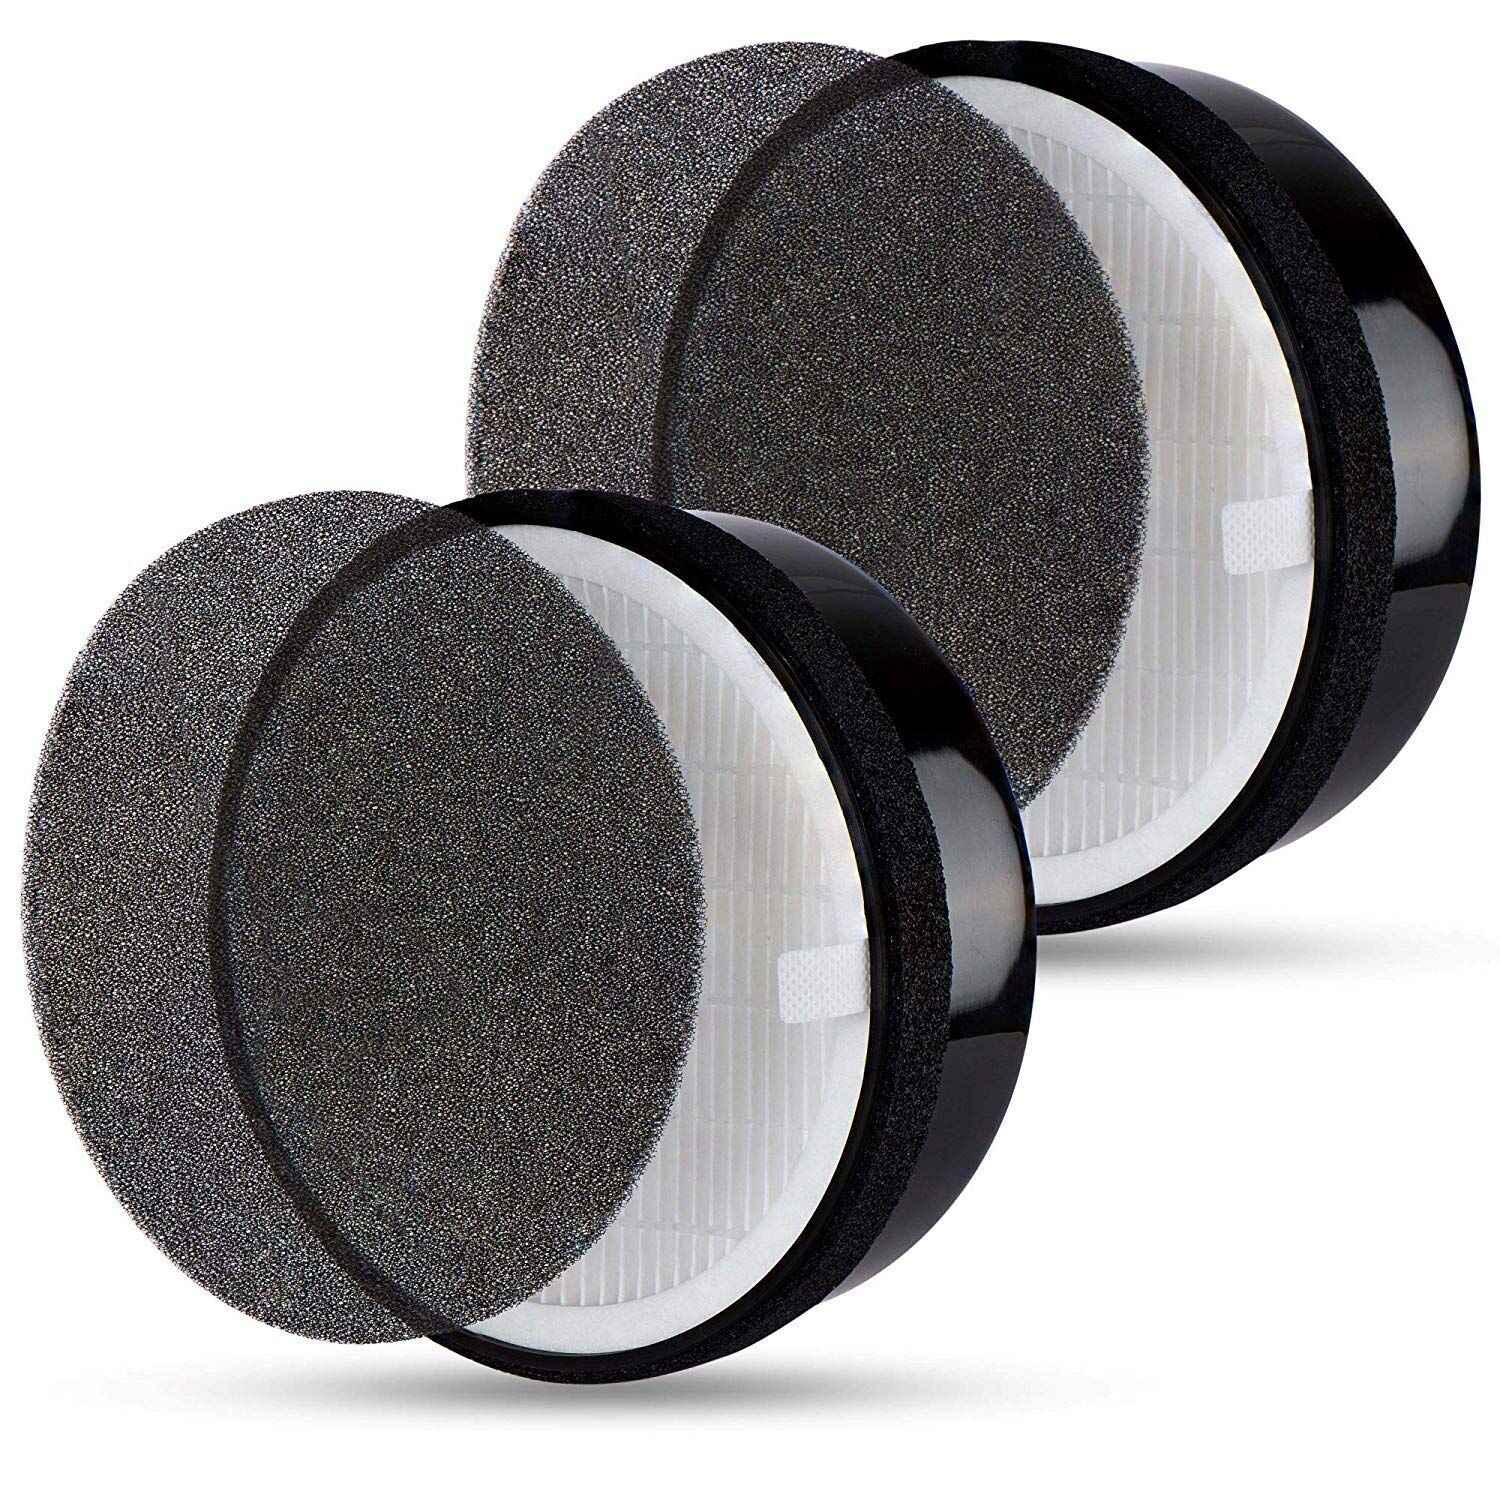 HEPA Air Filter Replacement for Levoit Air Purifier LV-H132, 2 SetsHEPA Air Filter Replacement for Levoit Air Purifier LV-H132, 2 Sets